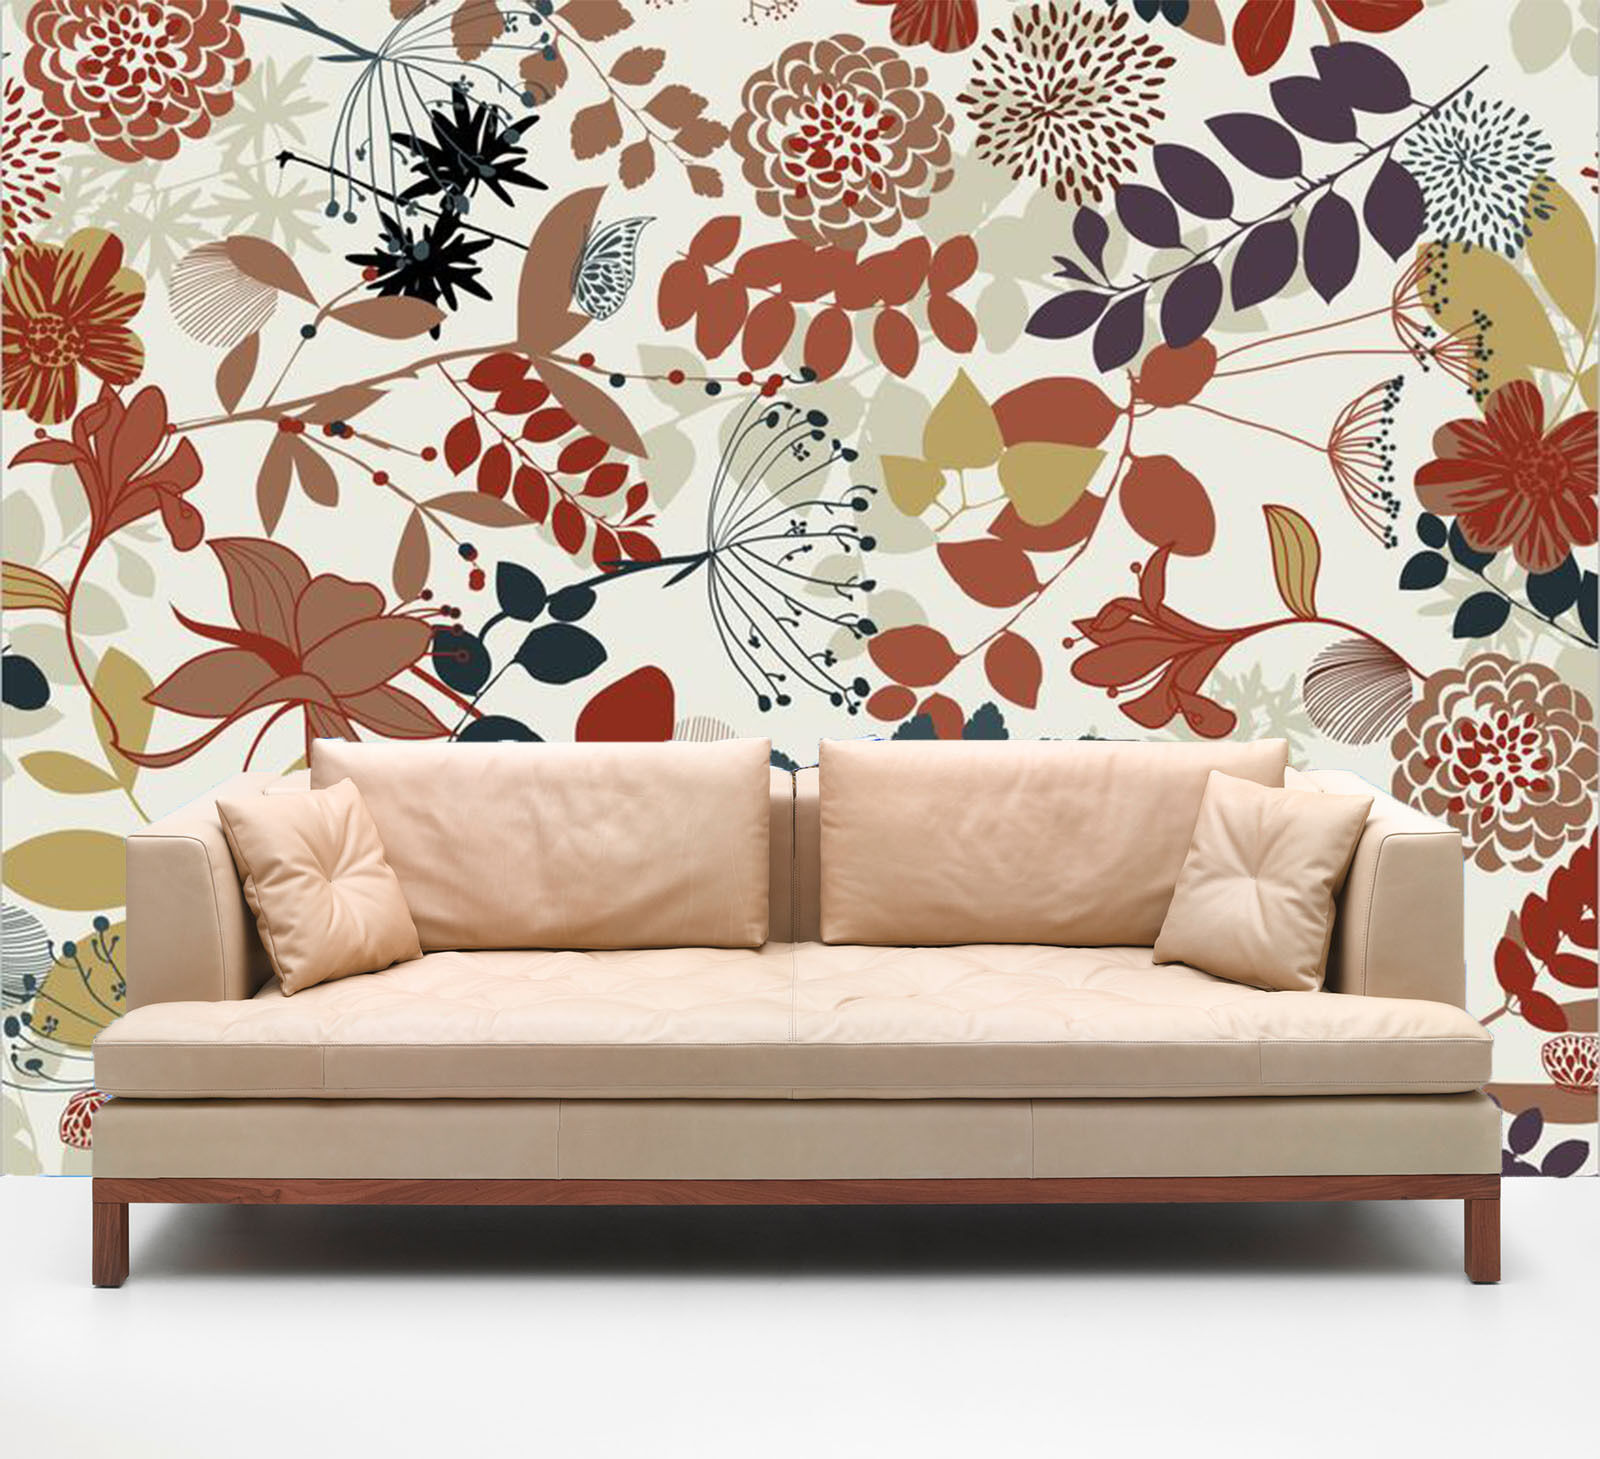 3D Autumn Leaves 7329 Wall Paper Wall Print Decal Wall Deco Indoor Wall